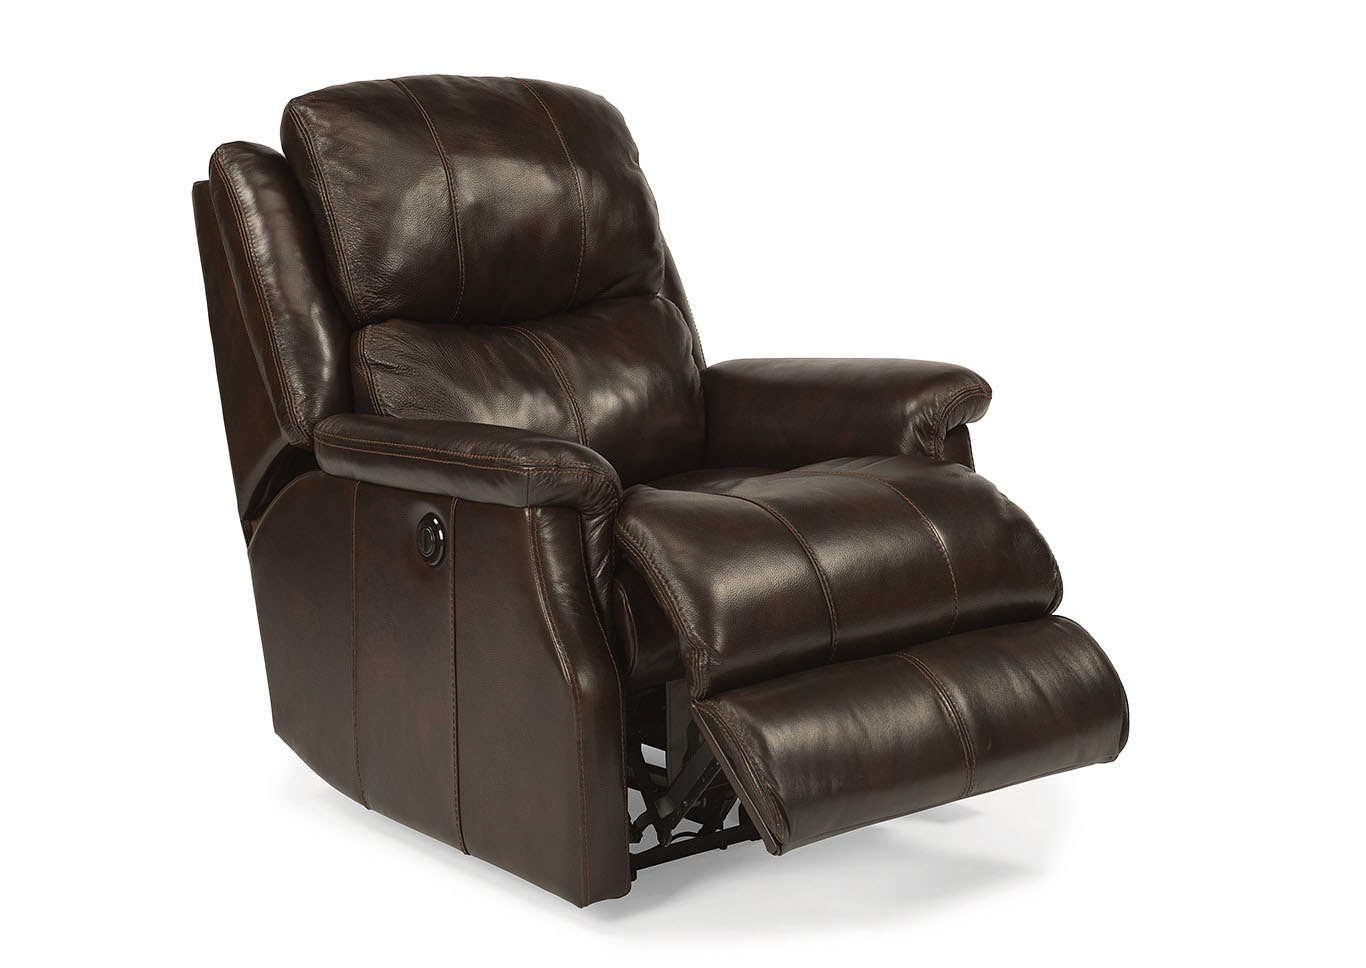 Prime Country House Furniture Mateo Leather Power Recliner Dailytribune Chair Design For Home Dailytribuneorg